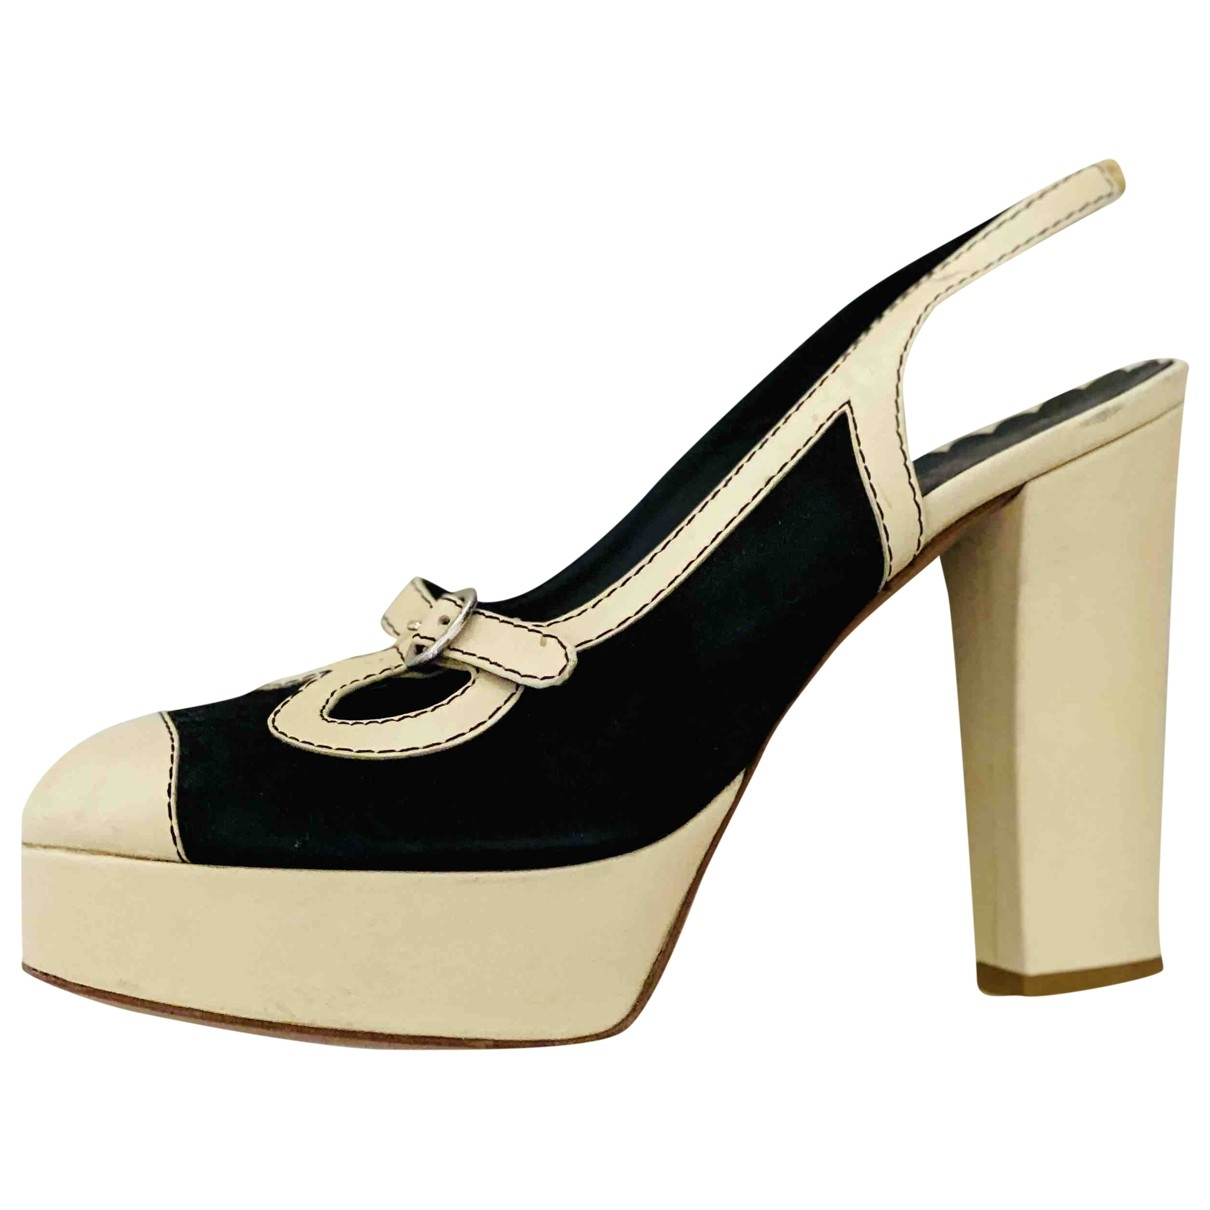 Moschino Cheap And Chic \N Beige Leather Heels for Women 38 EU